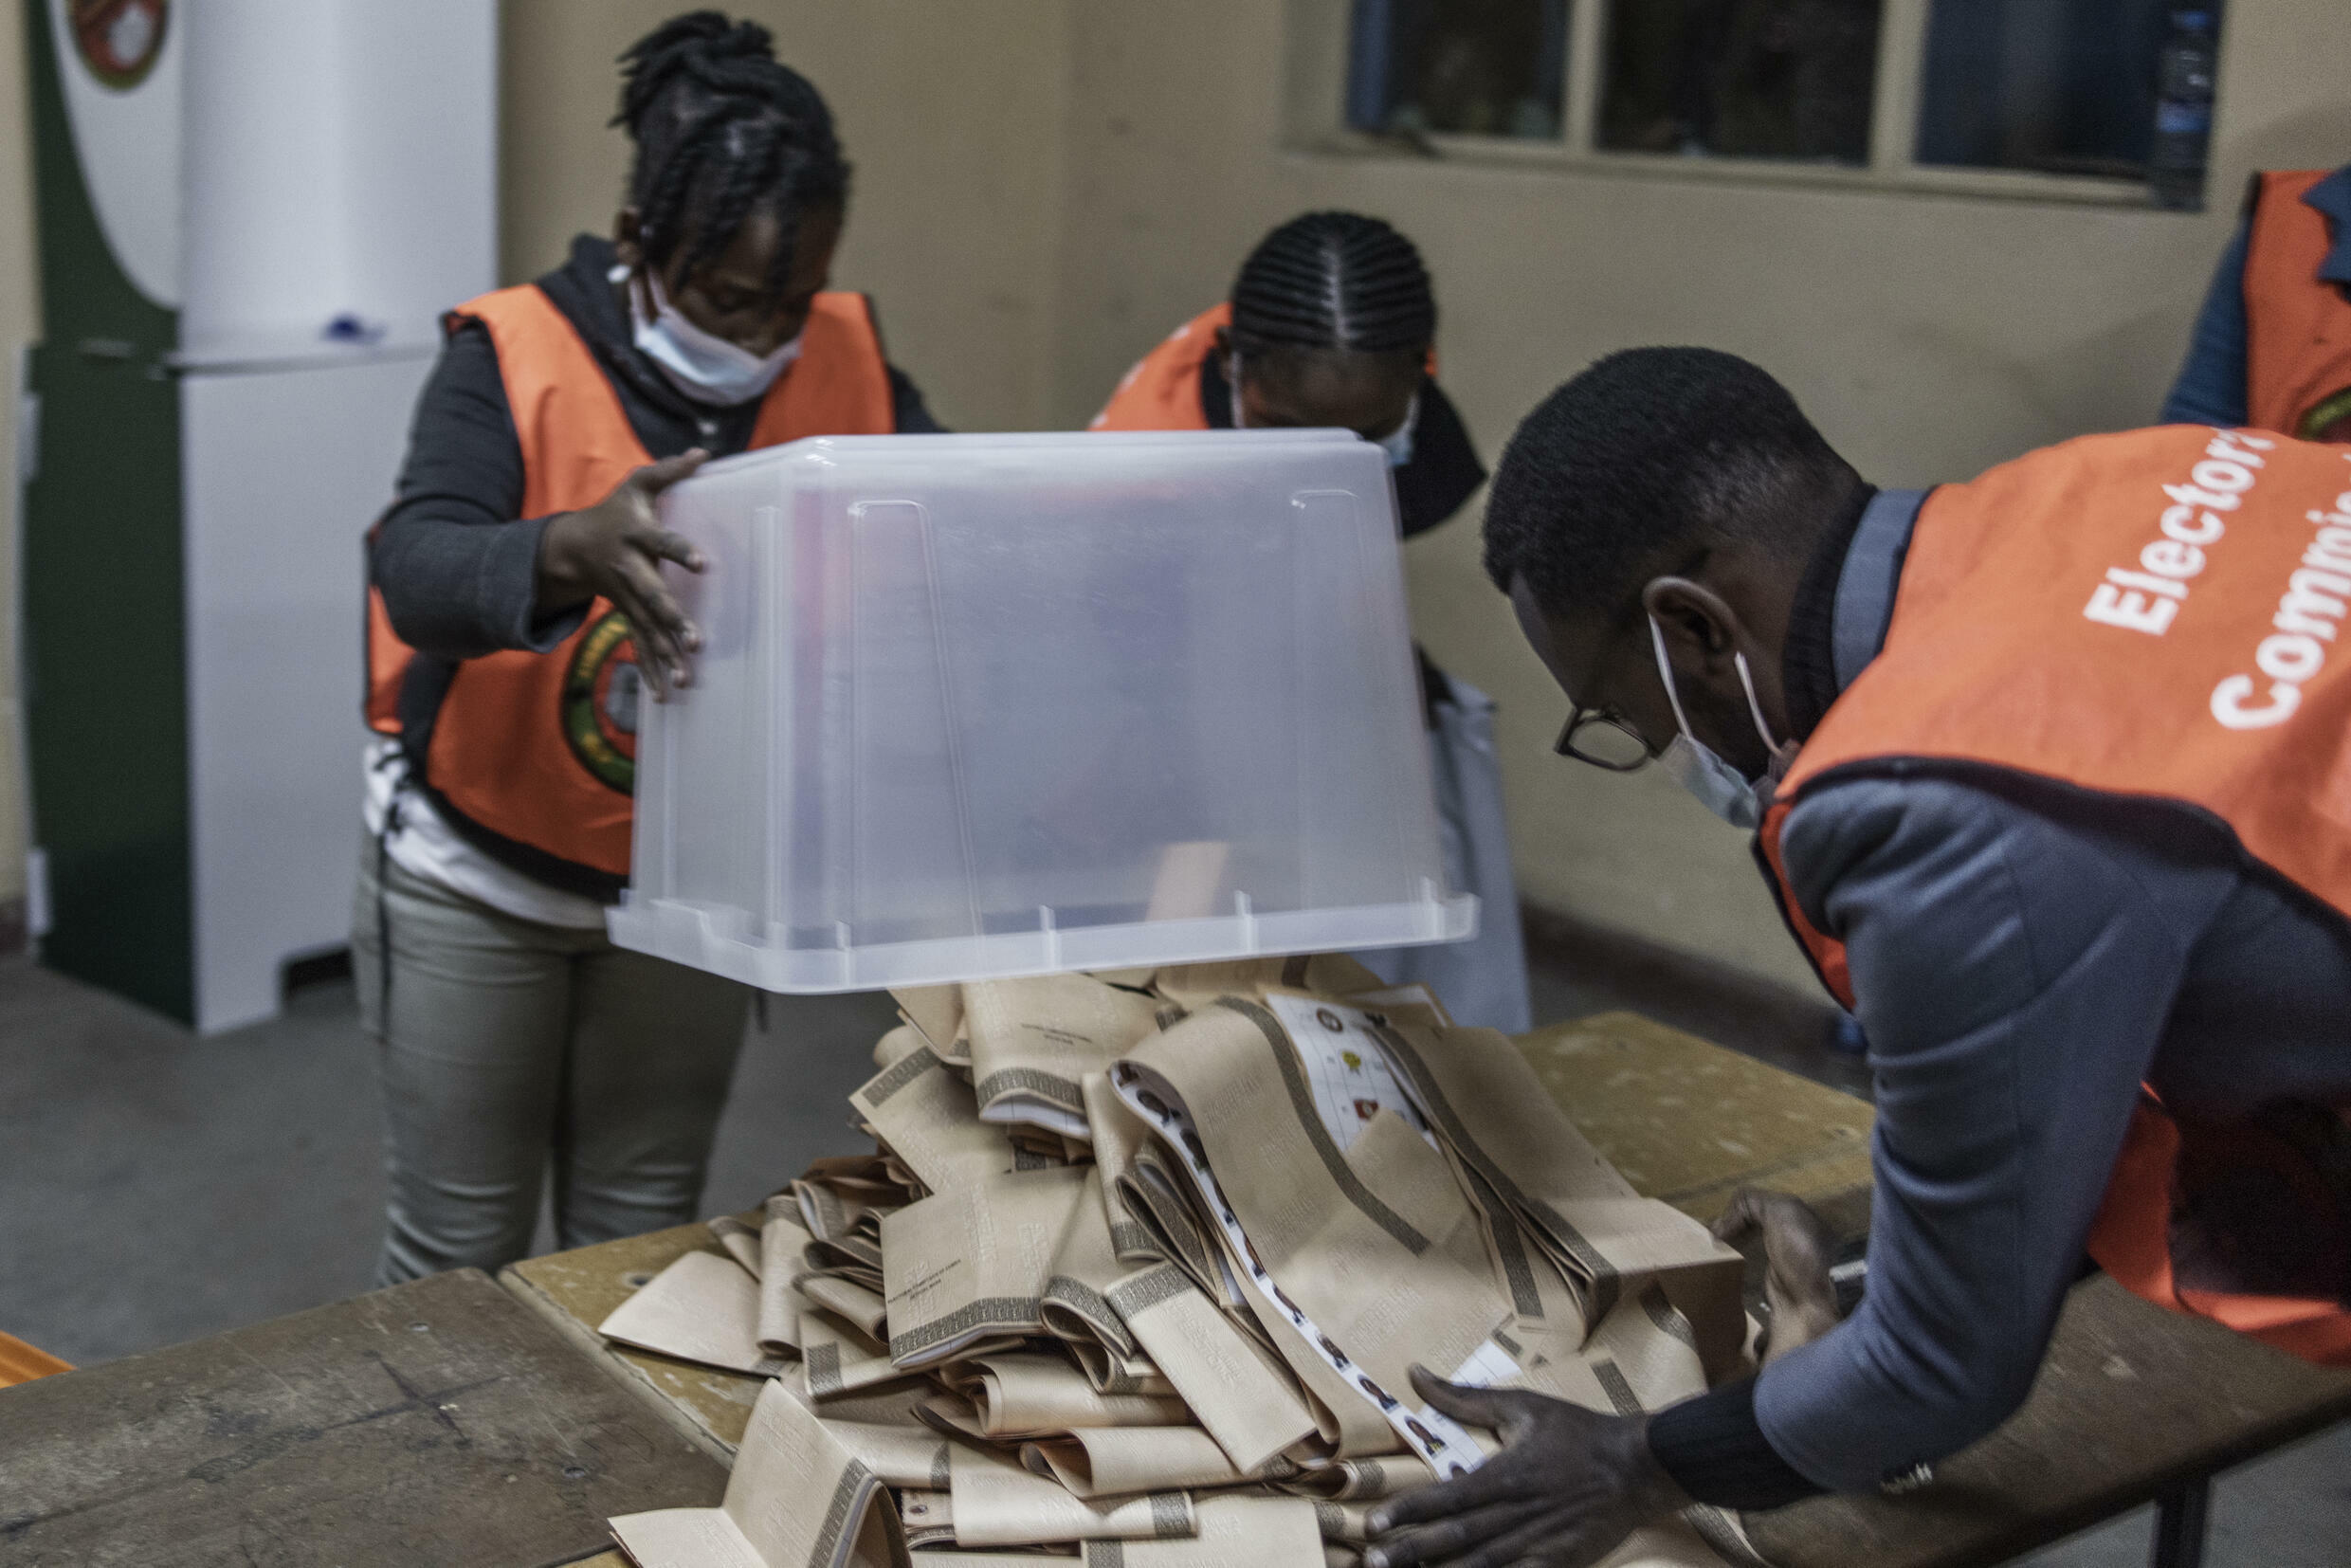 Zambia is counting votes after a tightly contested general election